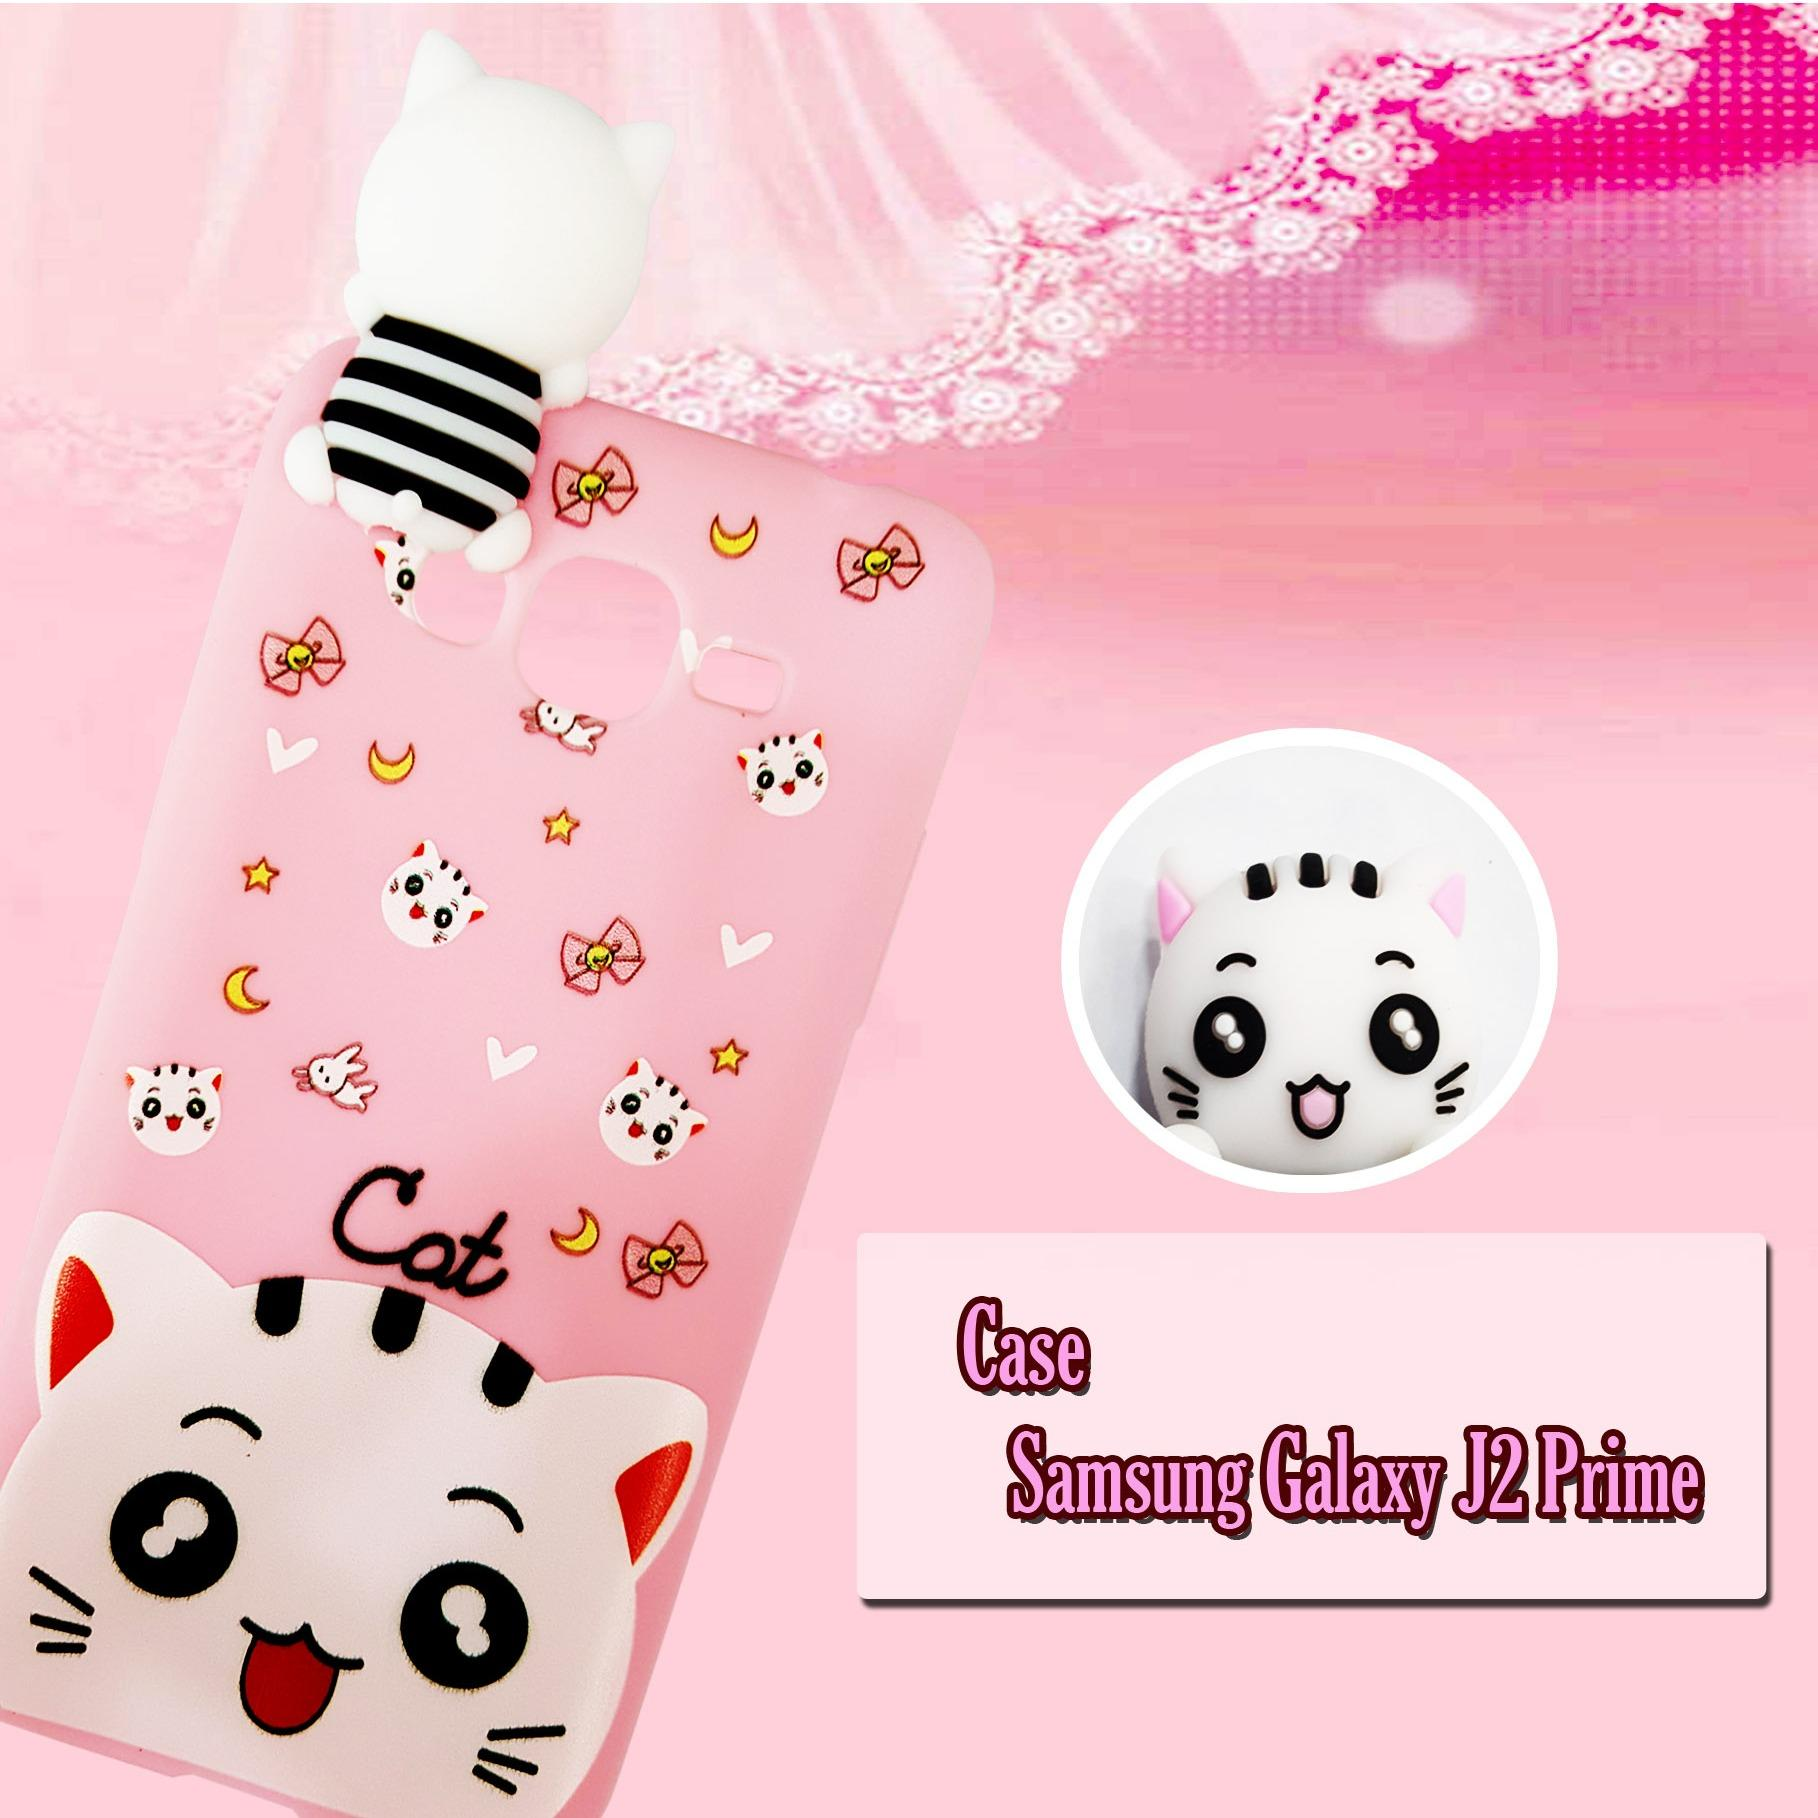 Case Cat Pink Manjat Terbaru For Samsung Galaxy J2 Prime